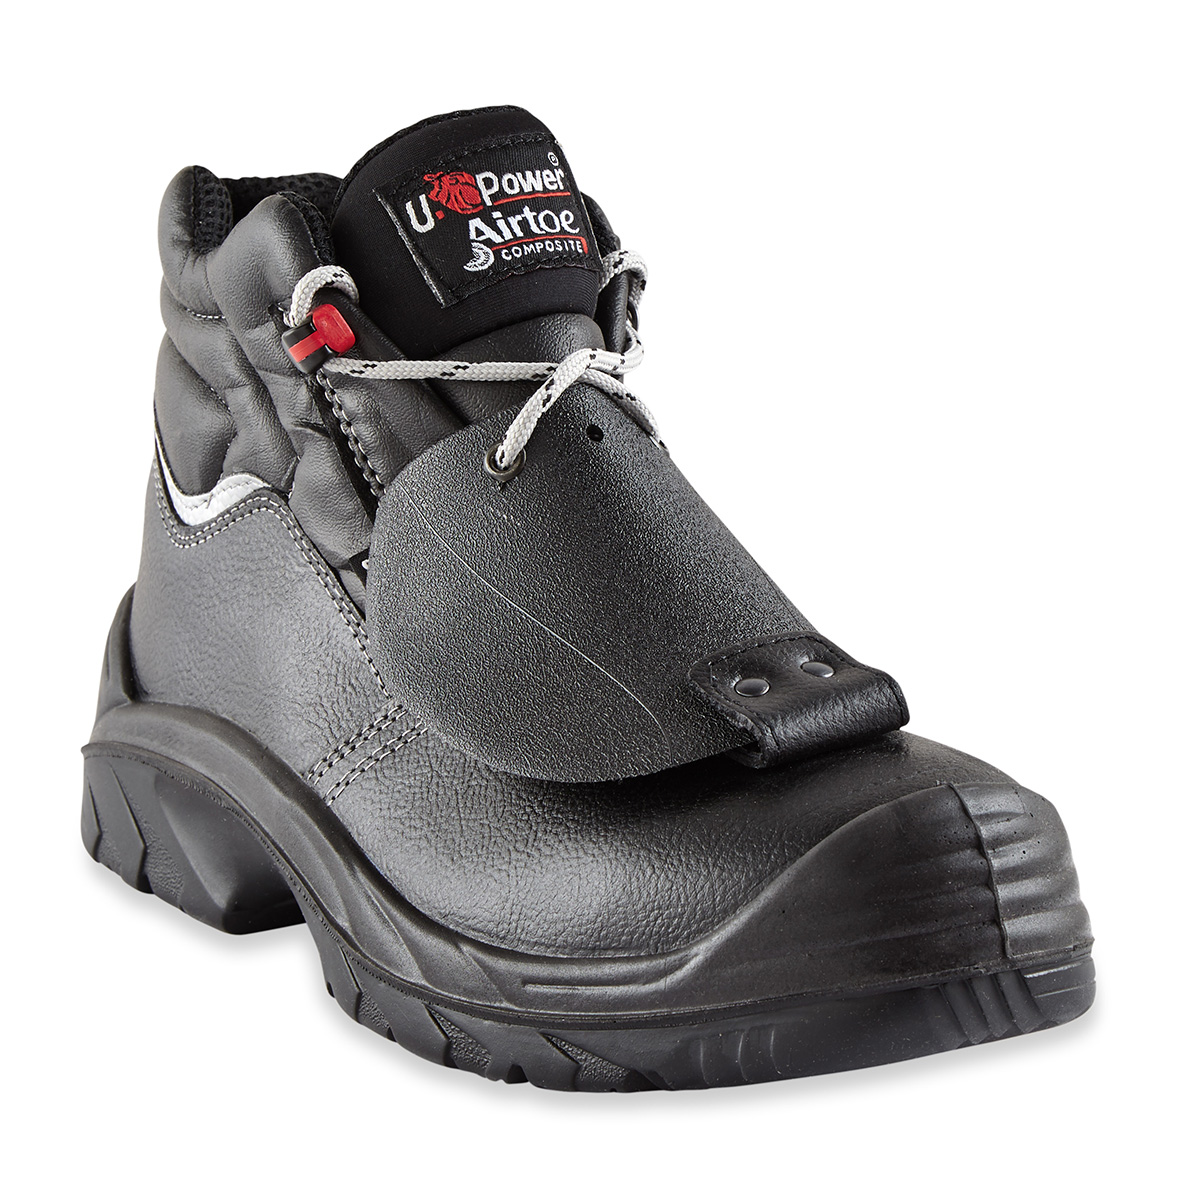 SF6802_STD_Depp_Metatarsal_Protective_Safety_Boot